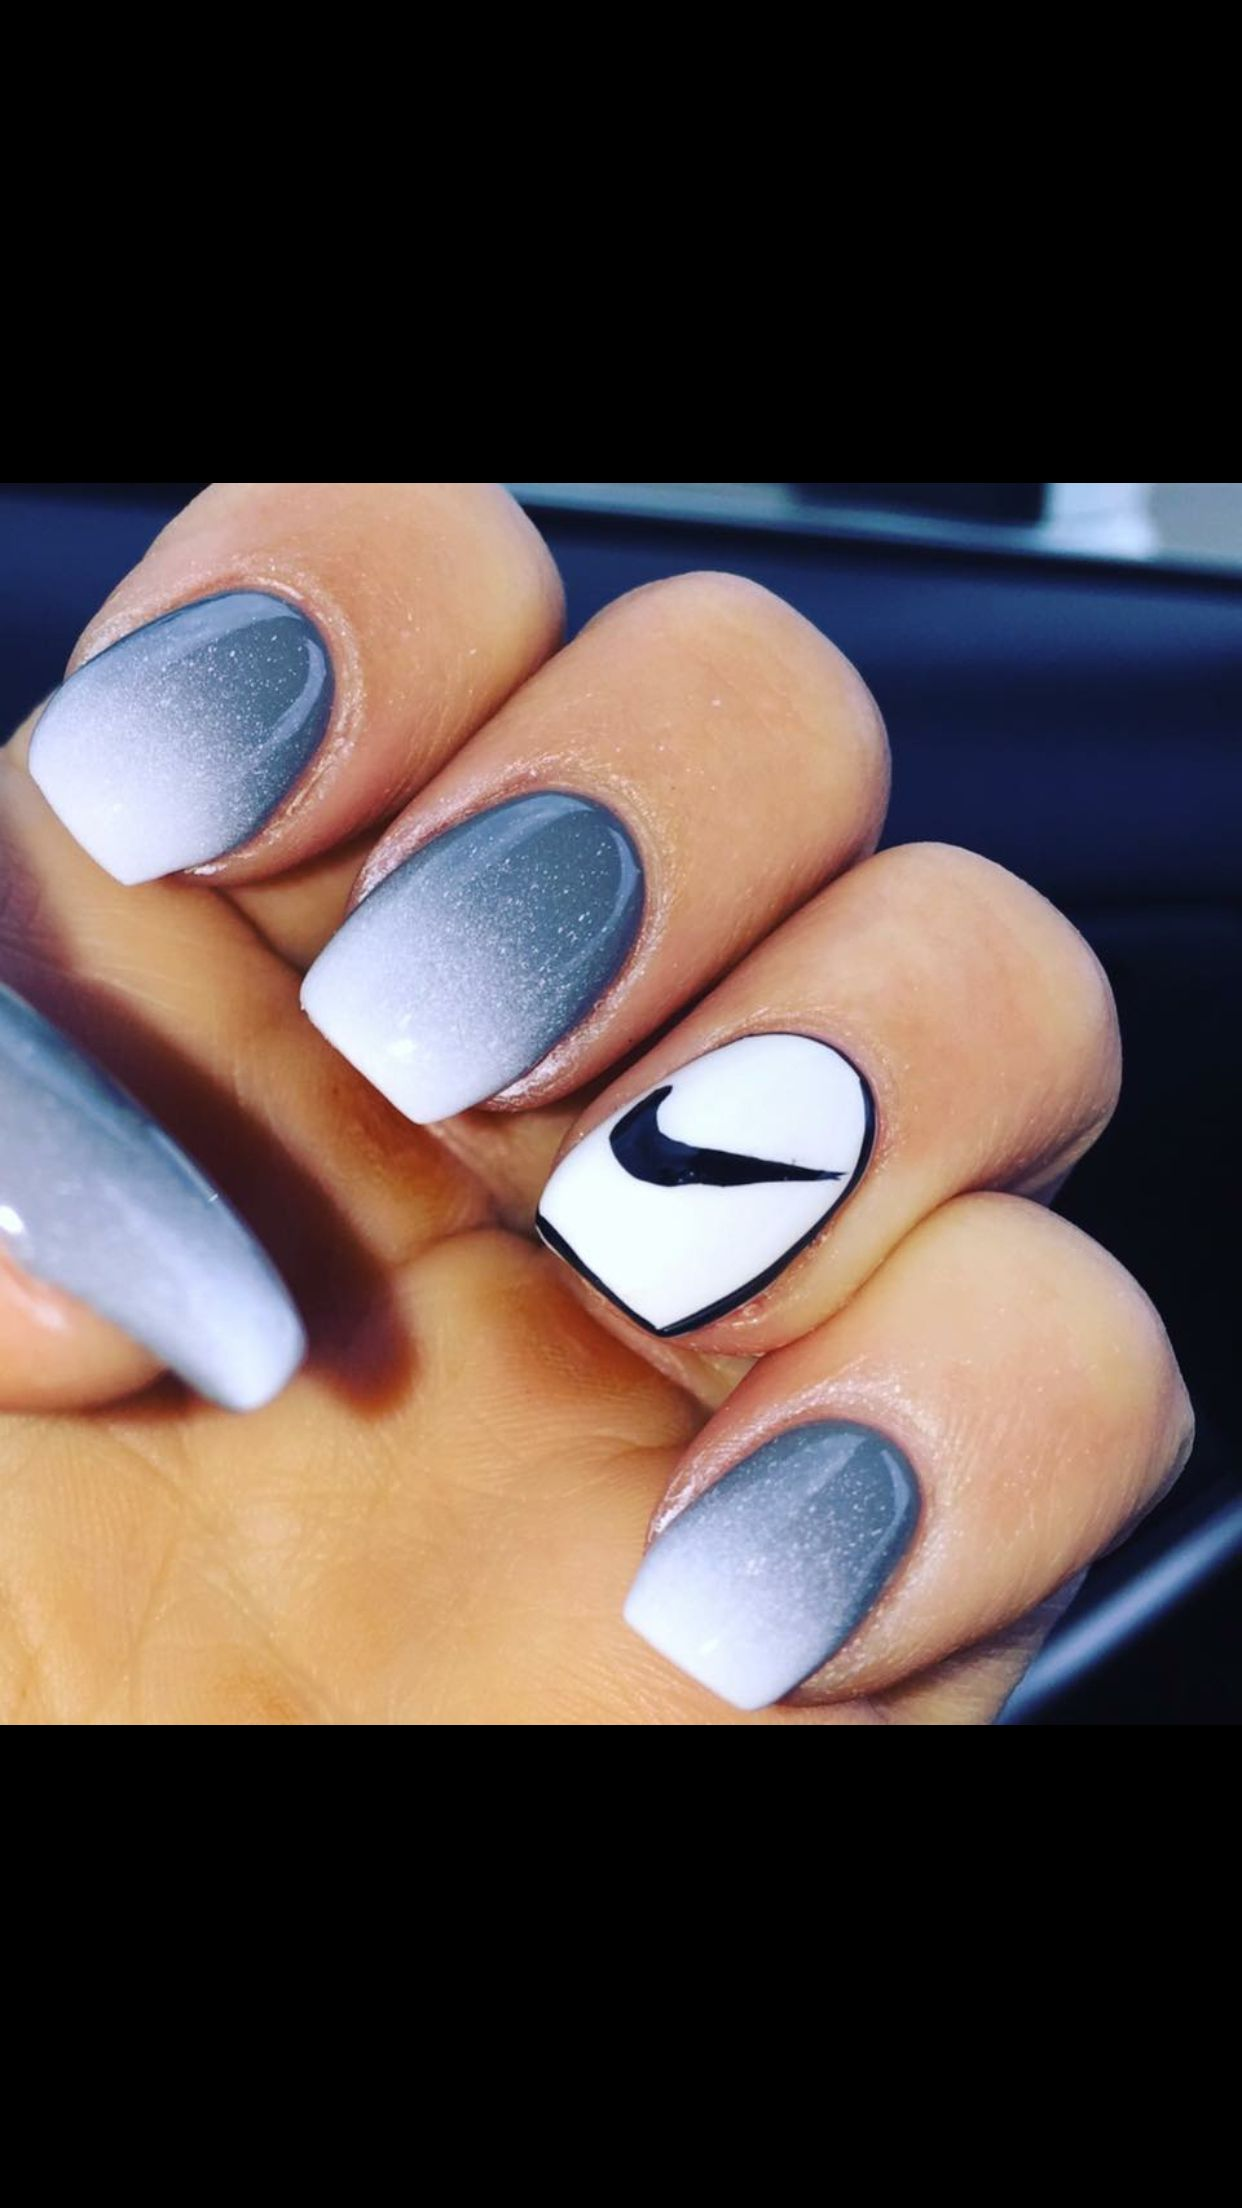 ombre #Nike #nails | Makeup | Pinterest | Nike nails, Ombre and Sns ...